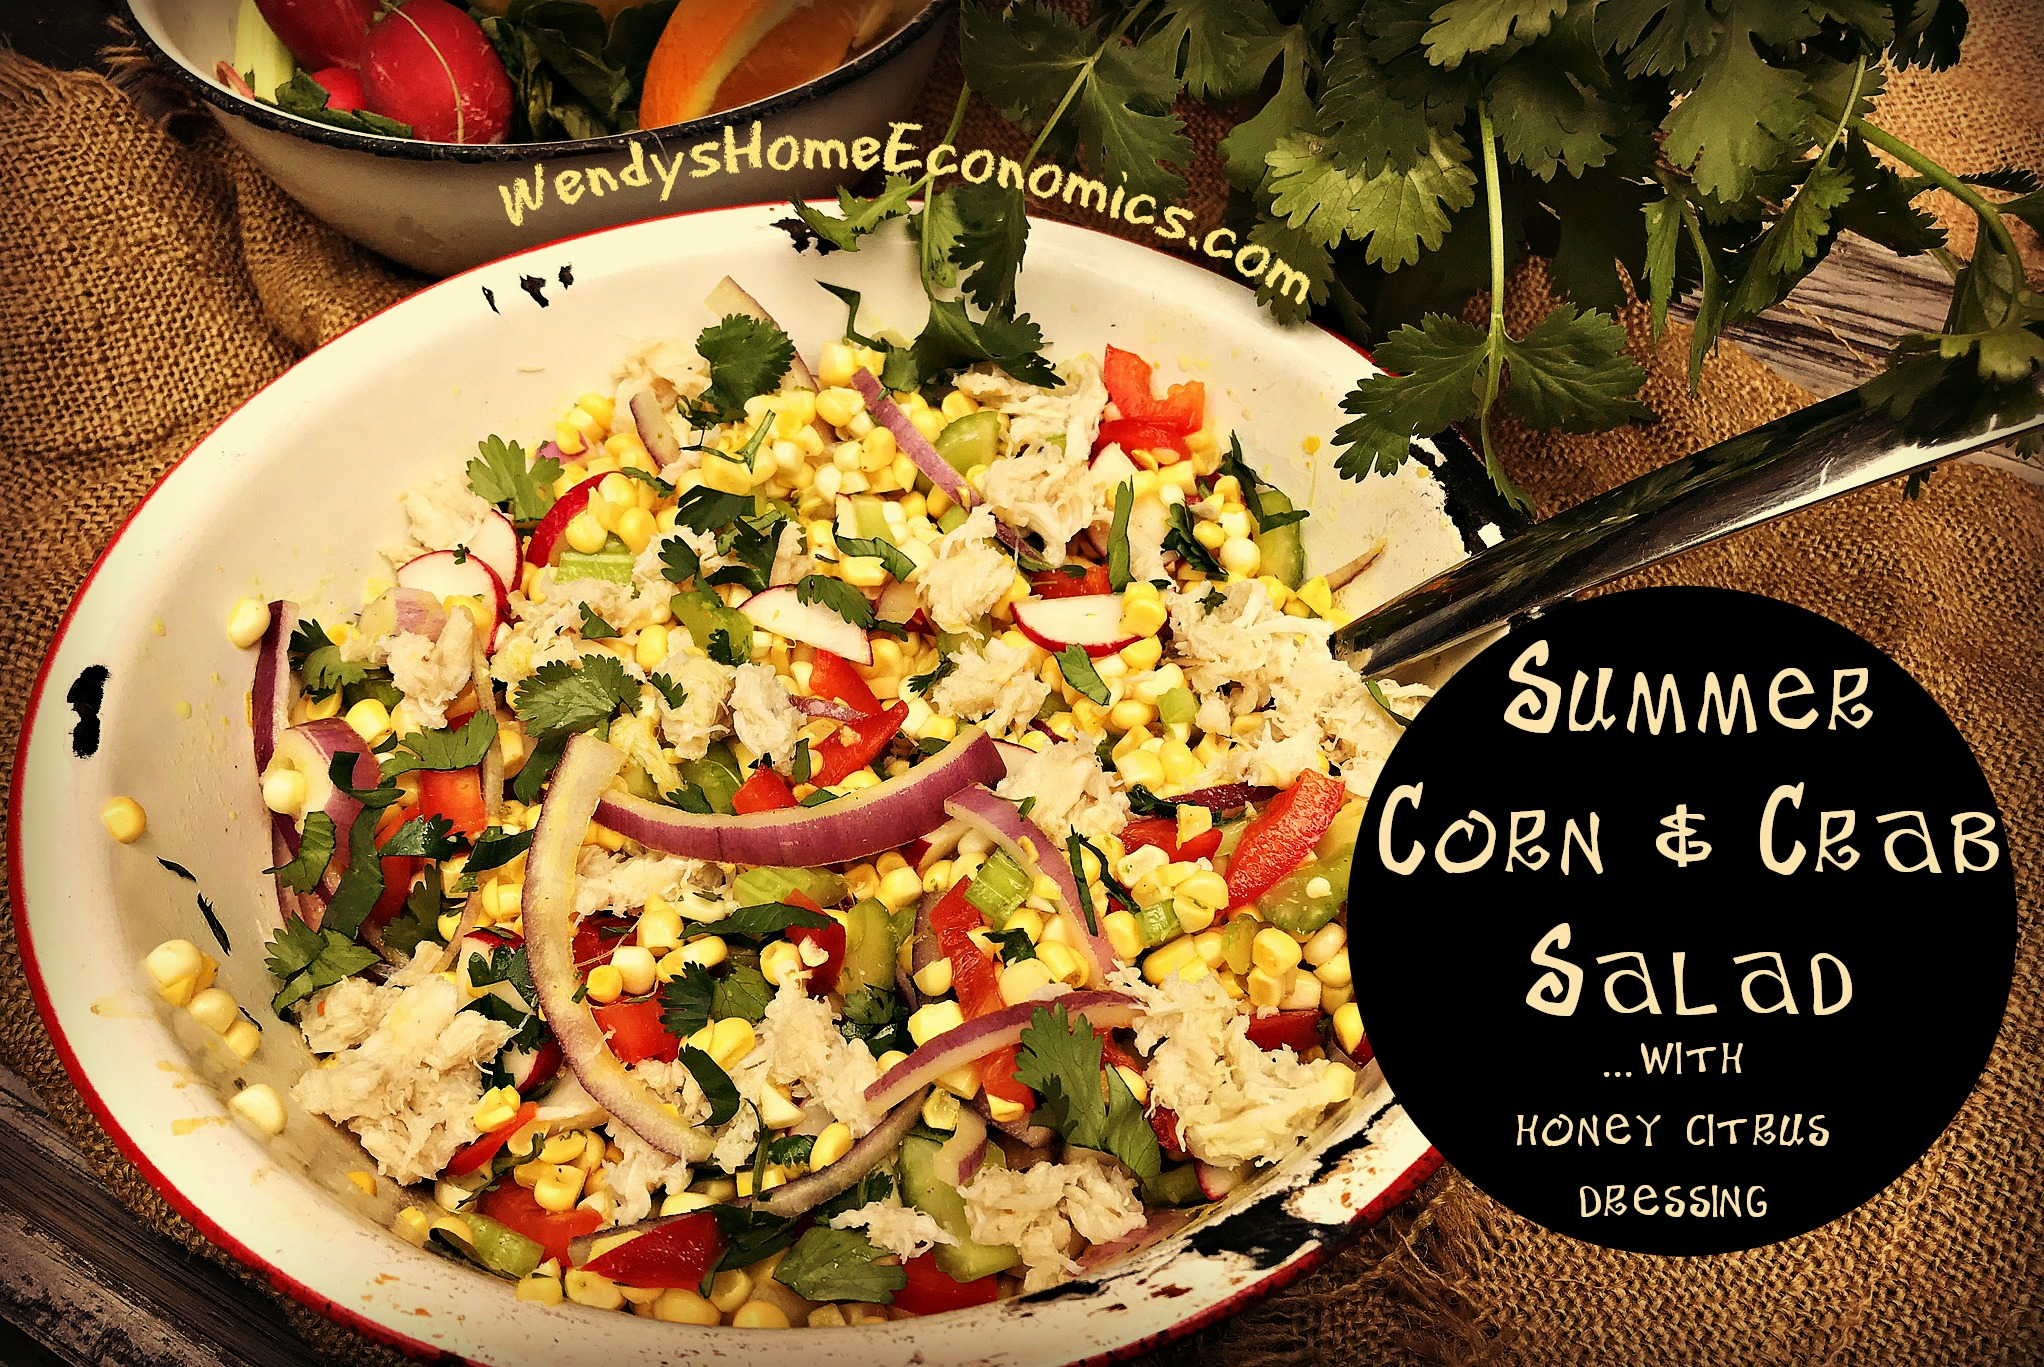 Summer Corn & Crab Salad with Honey Citrus Dressing